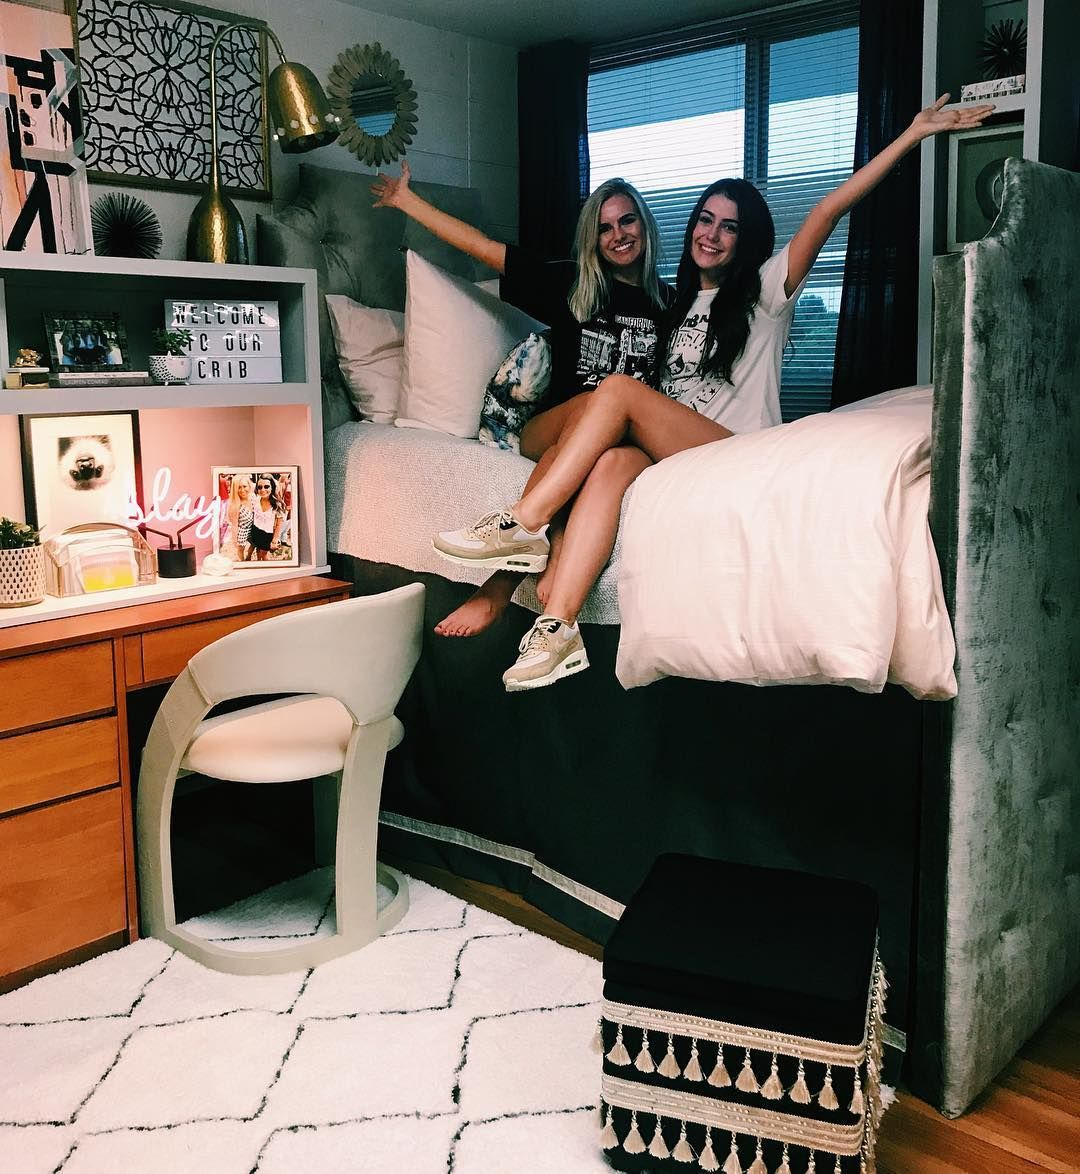 Frankly, you Party girls college dorm rooms